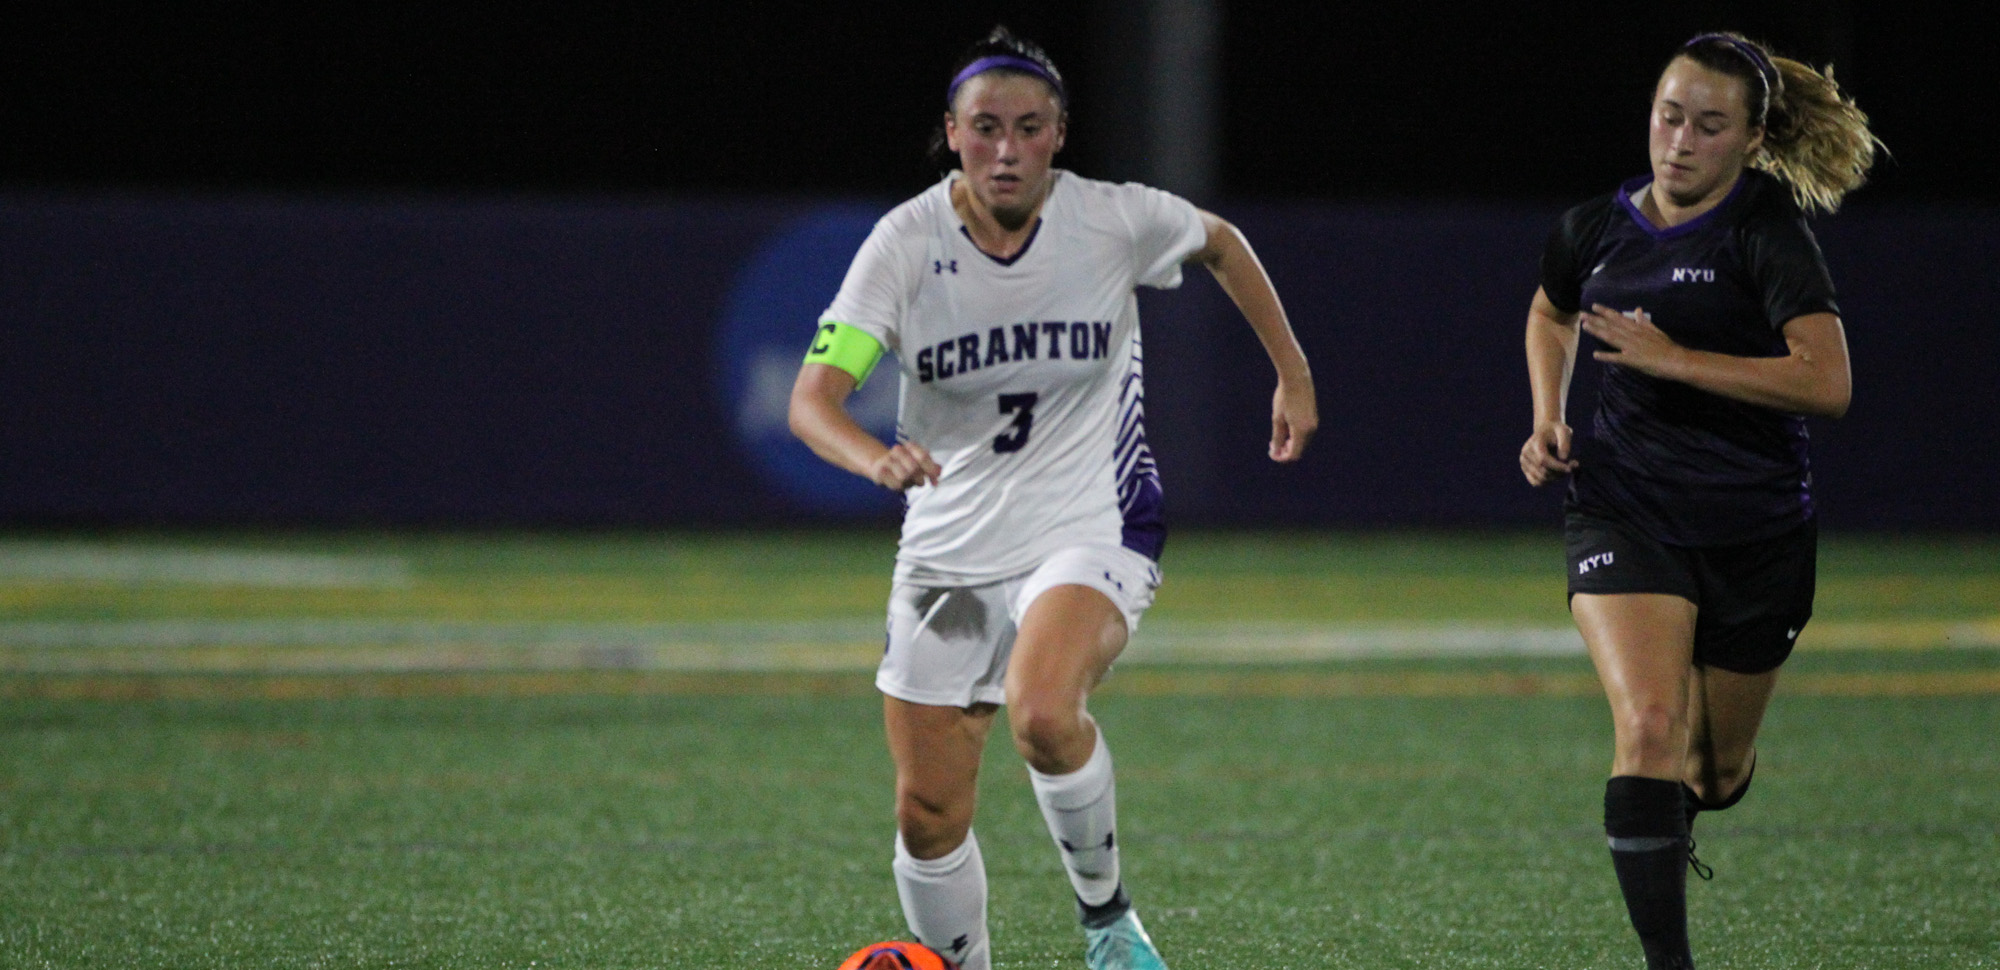 Senior Erica Licari scored her fifth goal of the season on Saturday.